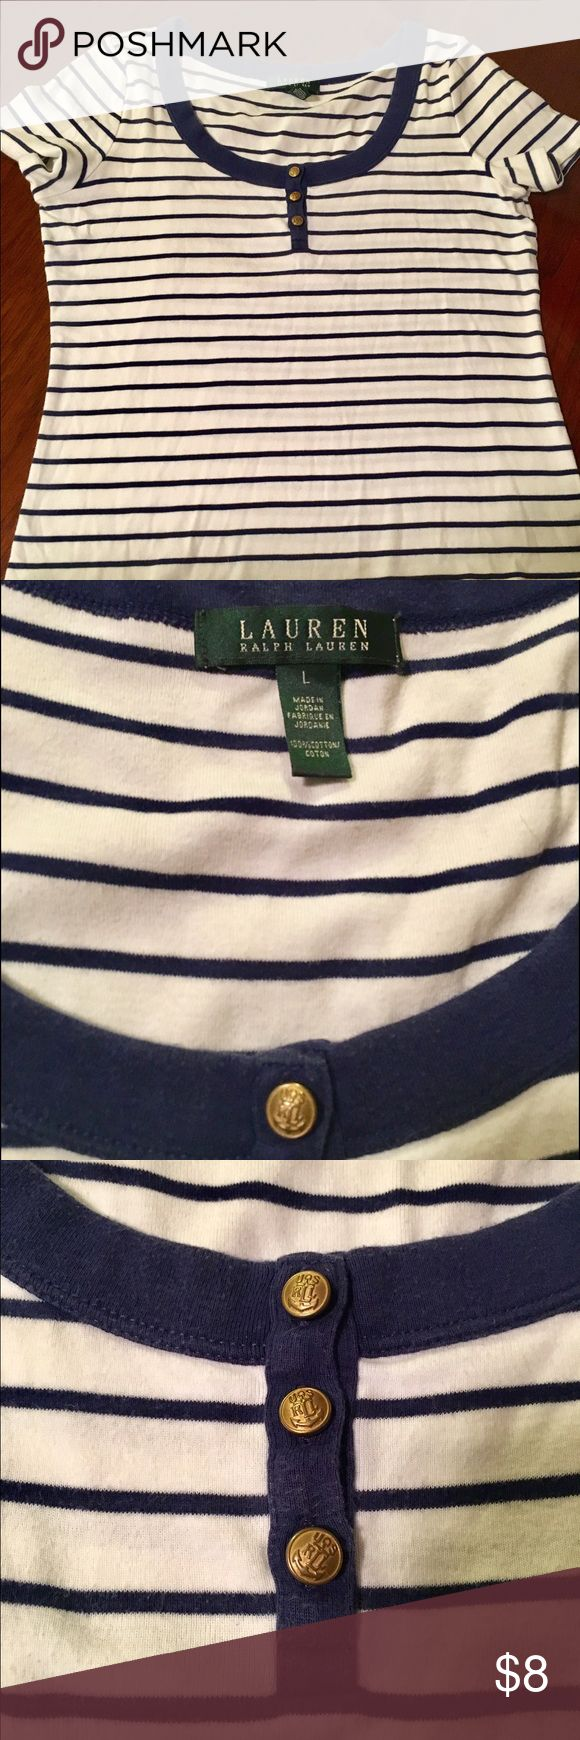 LAUREN Ralph Lauren Striped T-Shirt This nautical inspired shirt by LAUREN by Ralph Lauren fits like a small/medium despite its labeling as a large. Comfy, everyday top that hits below the waist. Gold buttons have the signature RL detailing. Lauren Ralph Lauren Tops Tees - Short Sleeve